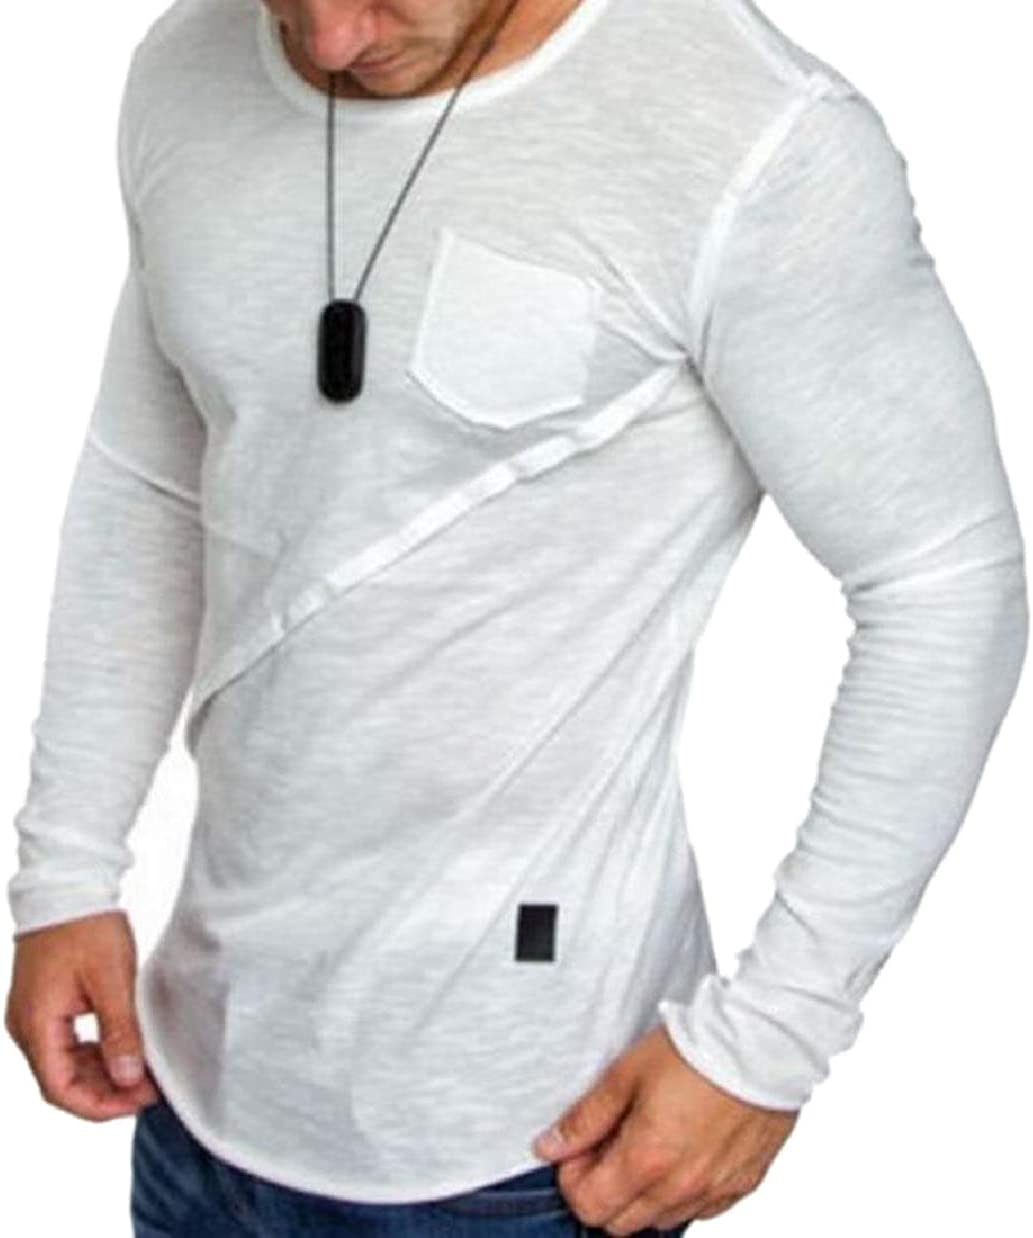 ZXFHZS Mens Patchwork Blouse Solid Color Long Sleve Loose Fit Casual Pullover Tees Top